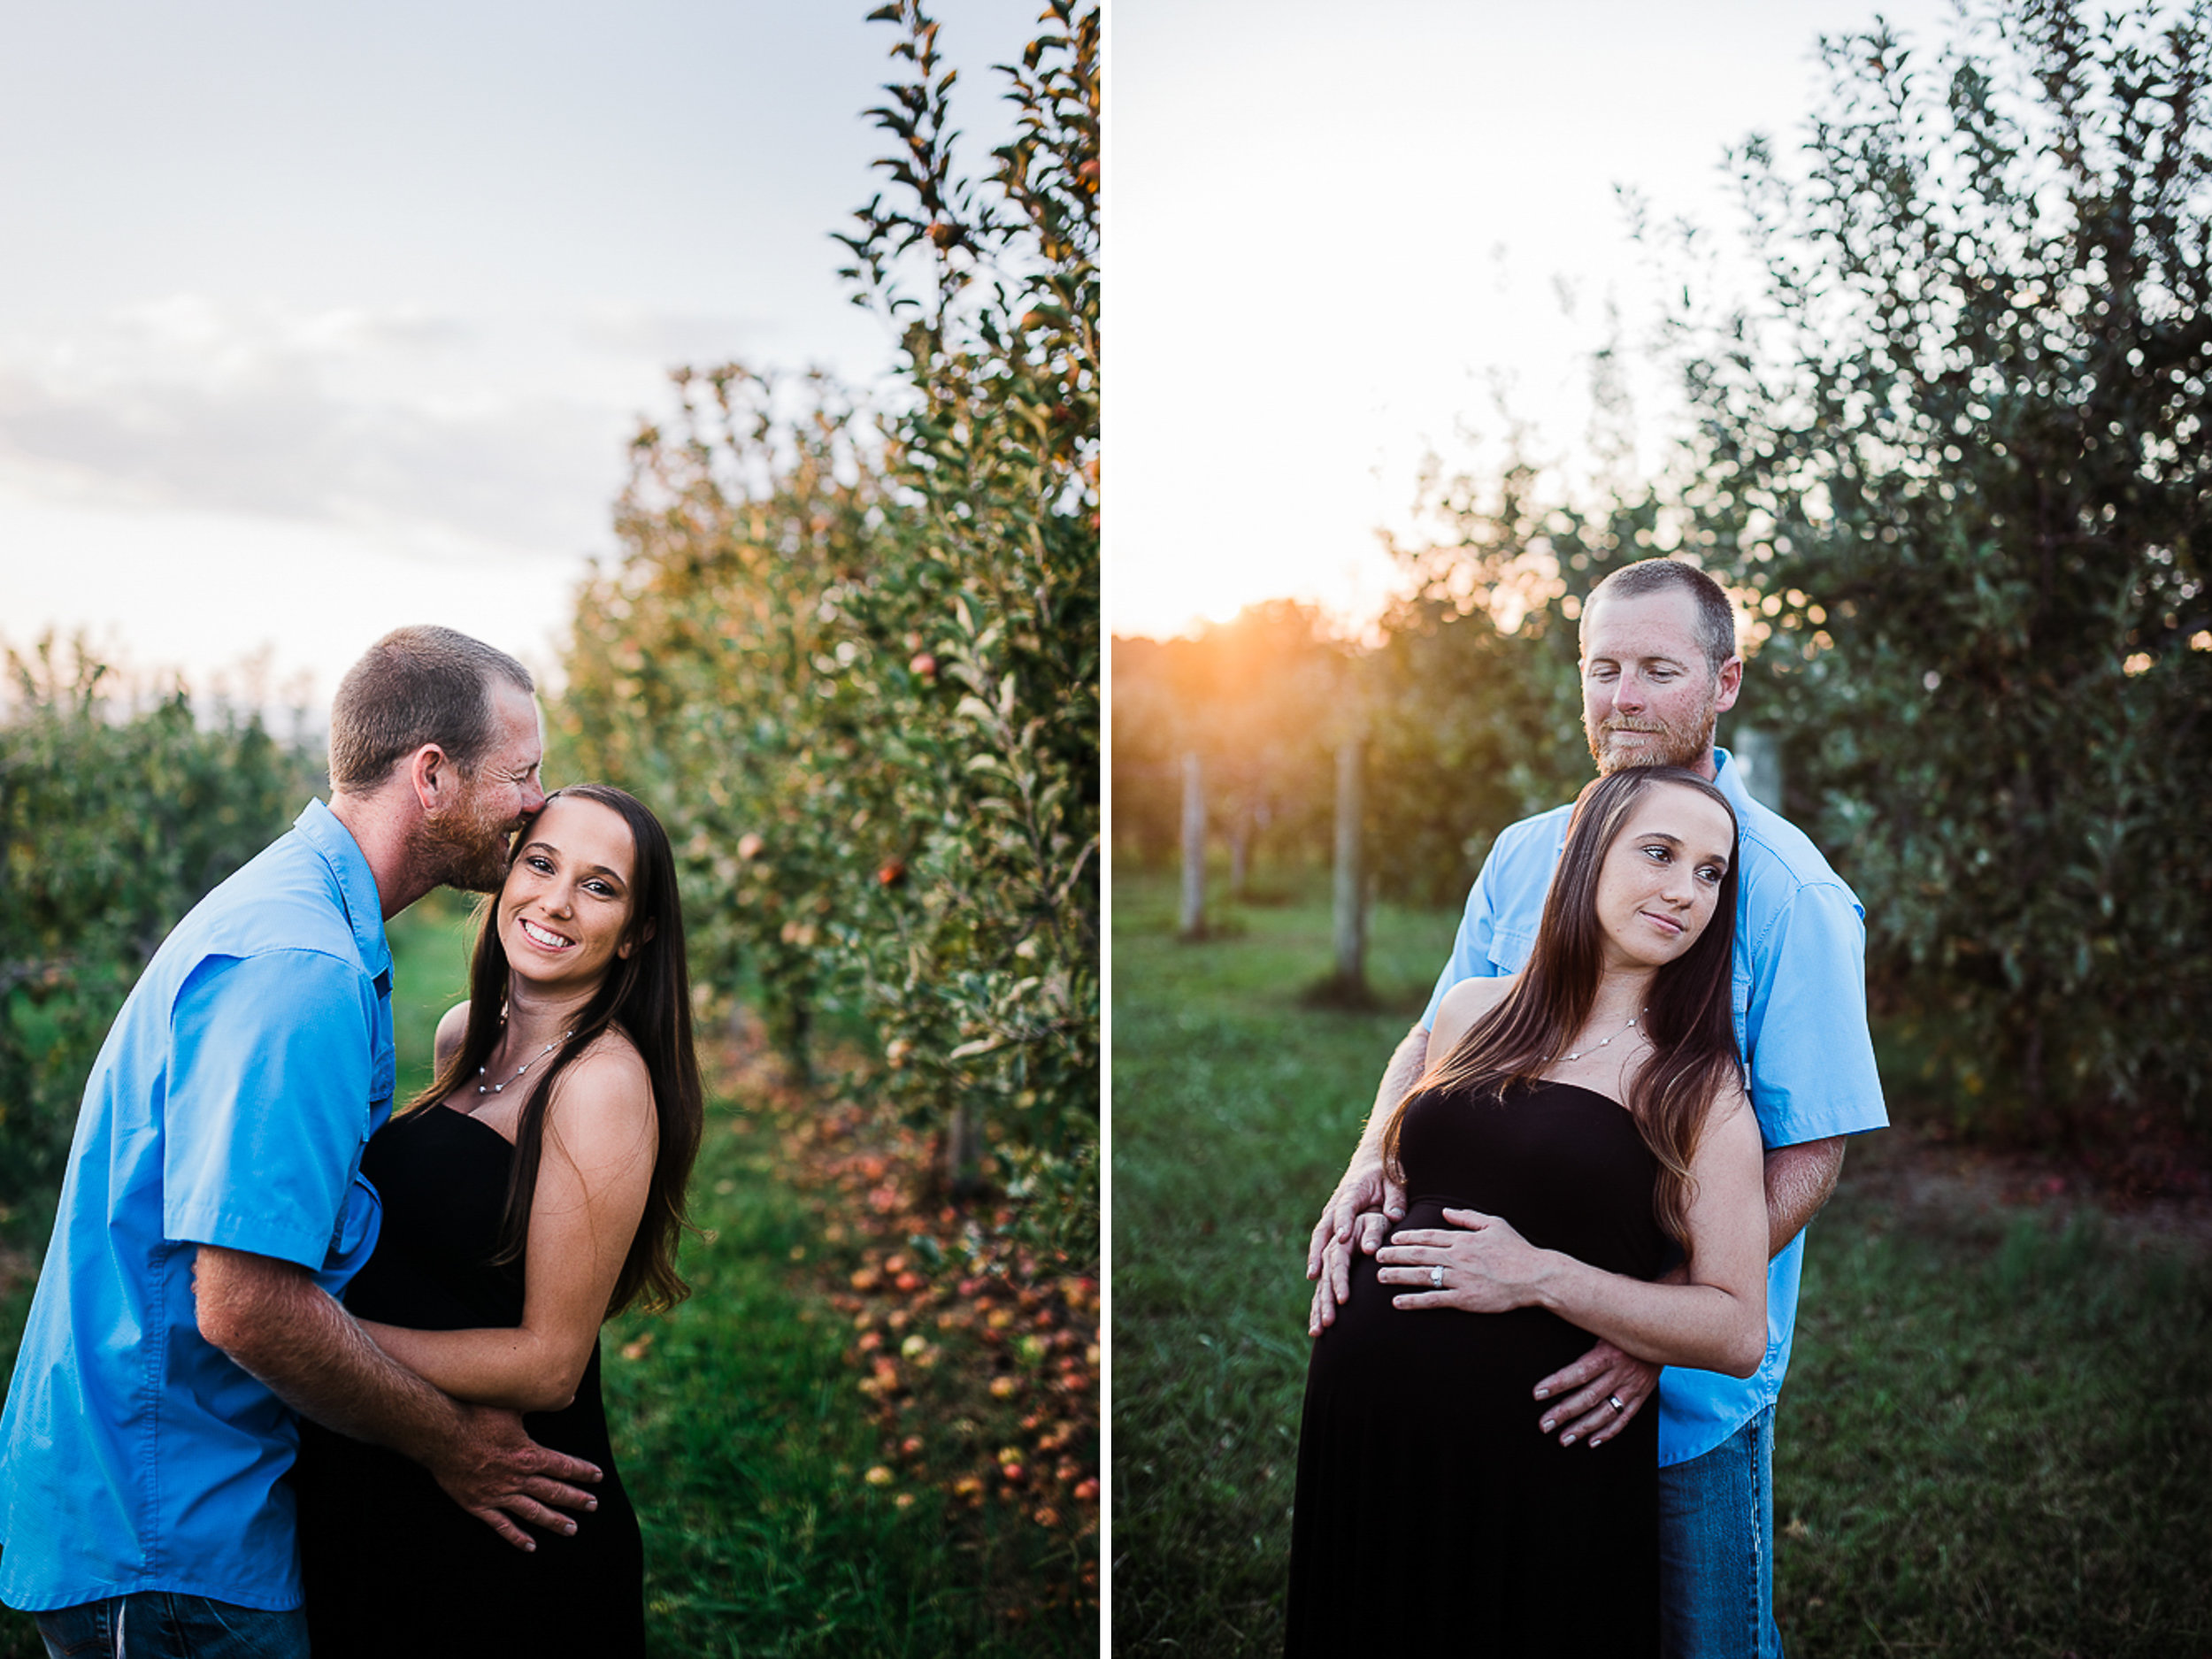 Baby Bump, Maternity Portraits, Mountain Maternity, Vineyard, River Maternity 11.jpg